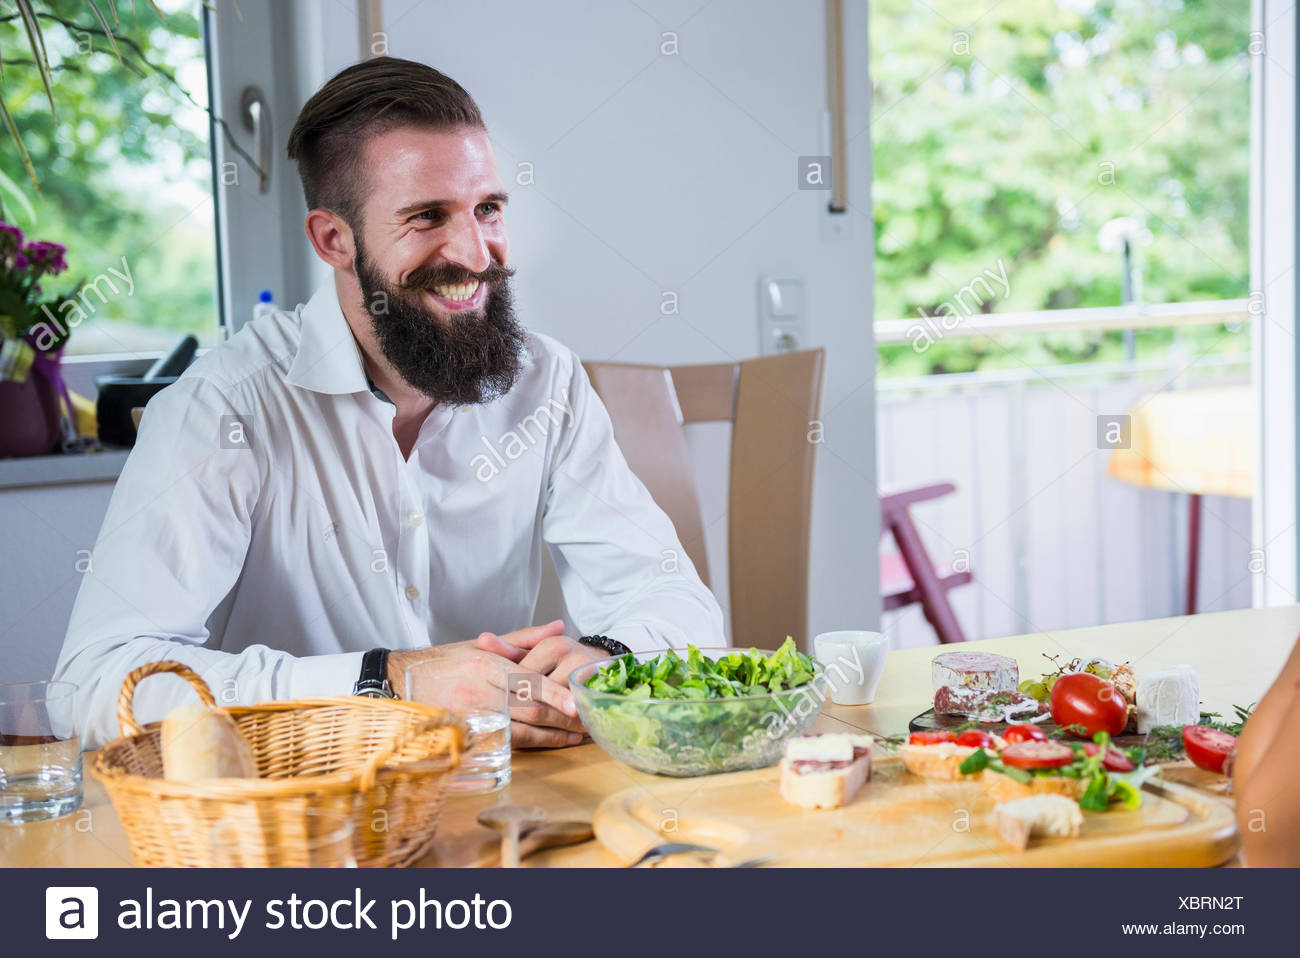 Young man sitting at kitchen table and smiling, Bavaria, Germany - Stock Image